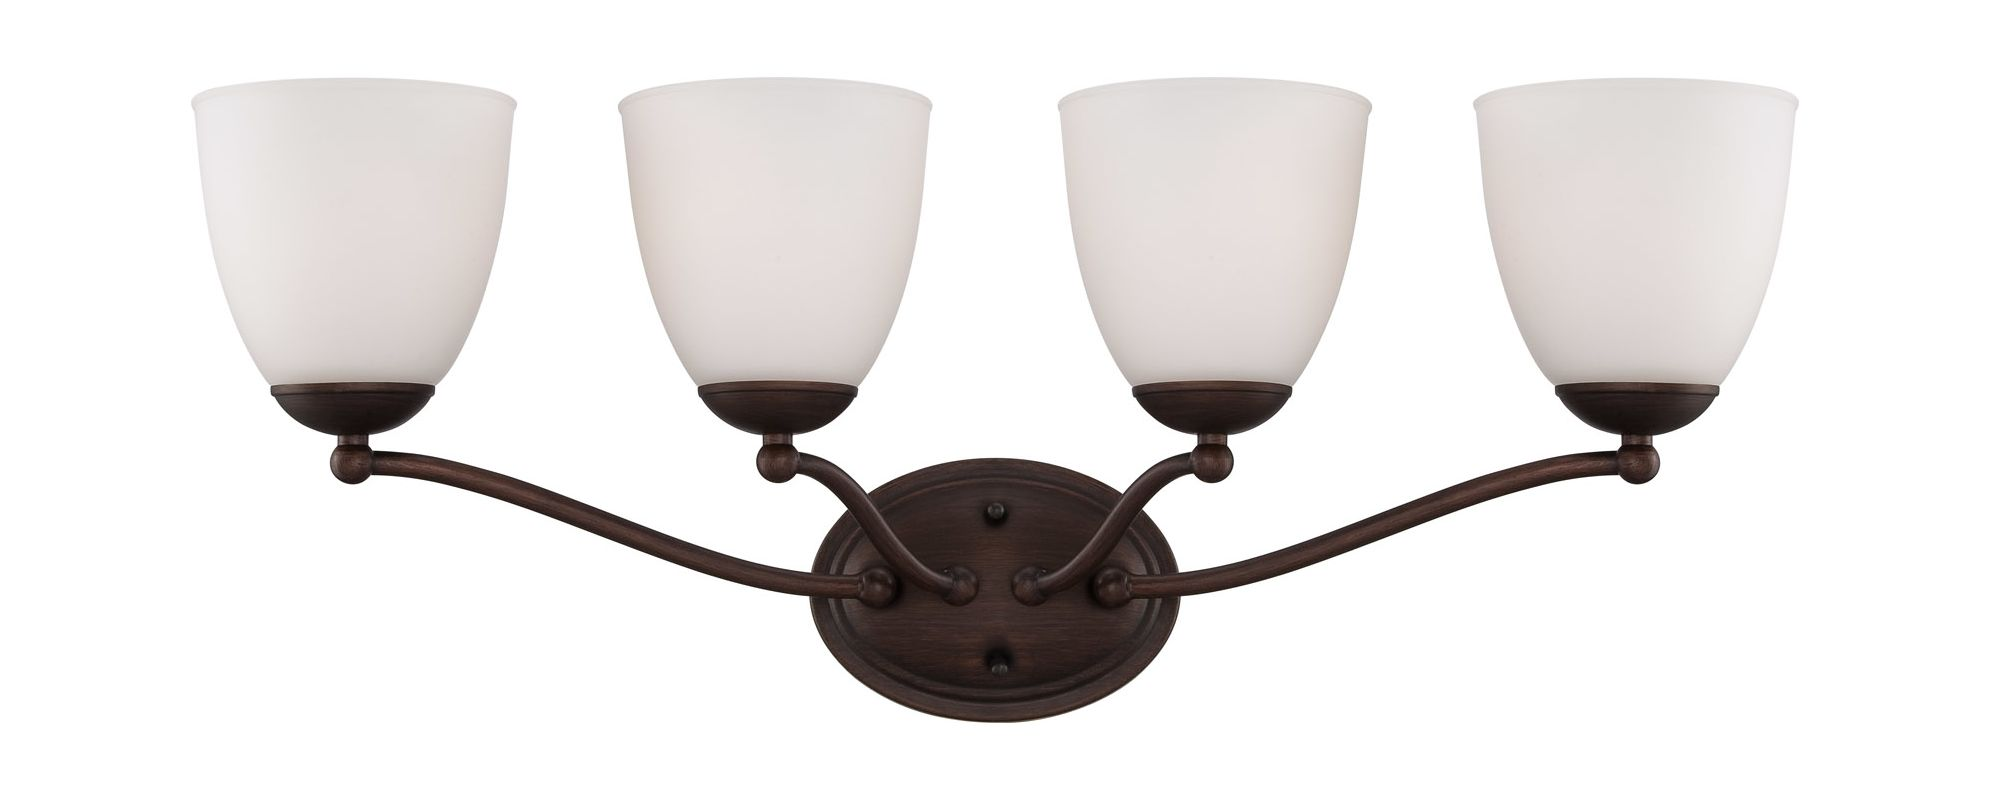 Nuvo Lighting 60/5134 Patton Four-Light Bathroom Fixture with Frosted